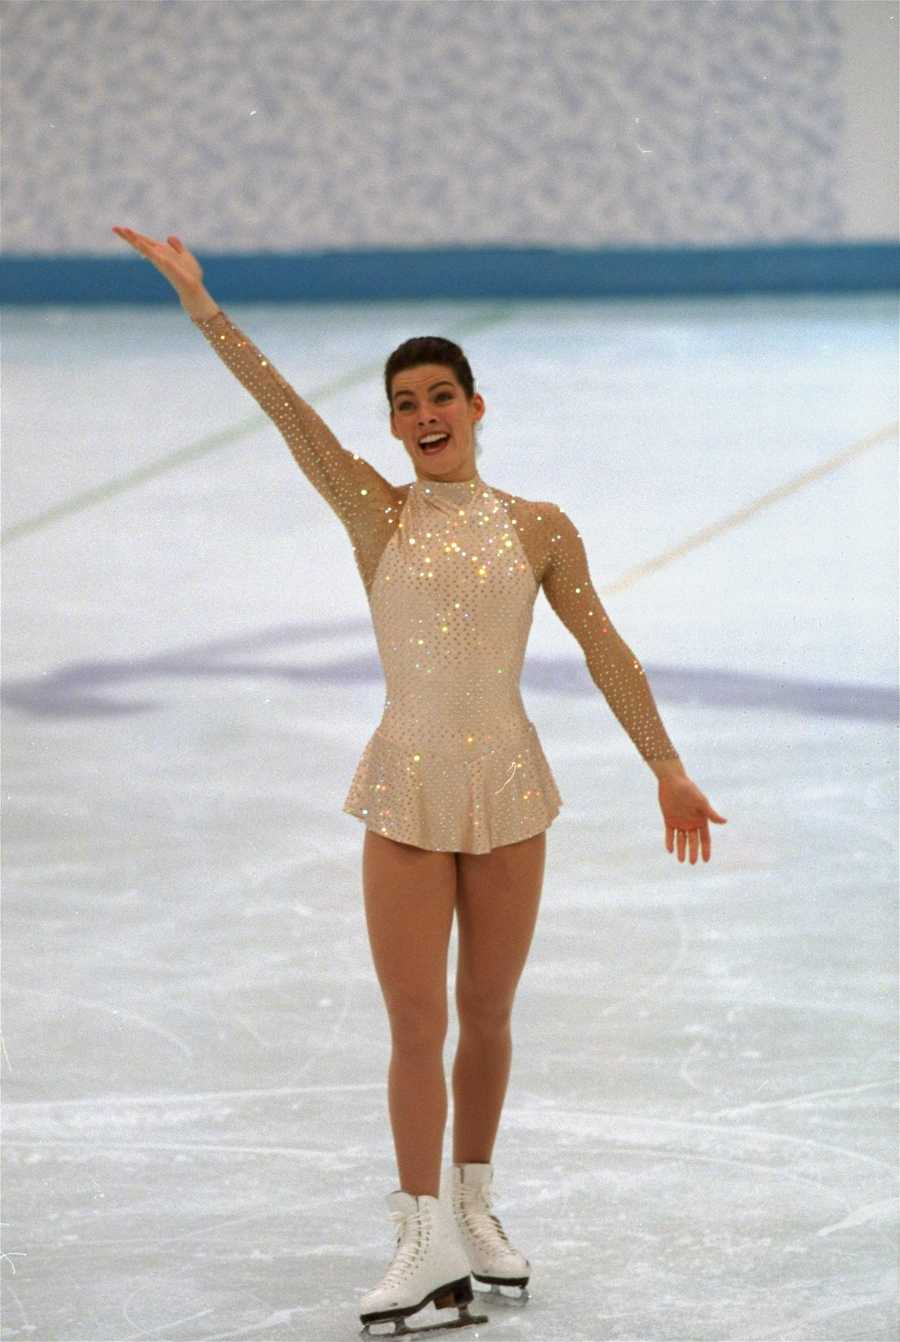 """""""Nancy Kerrigan's Silver Medal""""American figure skater Nancy Kerrigan beams after completing her free skating program, February 25, 1994, in Hamar, Norway. Kerrigan finished in second place to take the silver medal in the Winter Olympics, weeks after she was attacked by friends of rival skater Tonya Harding."""